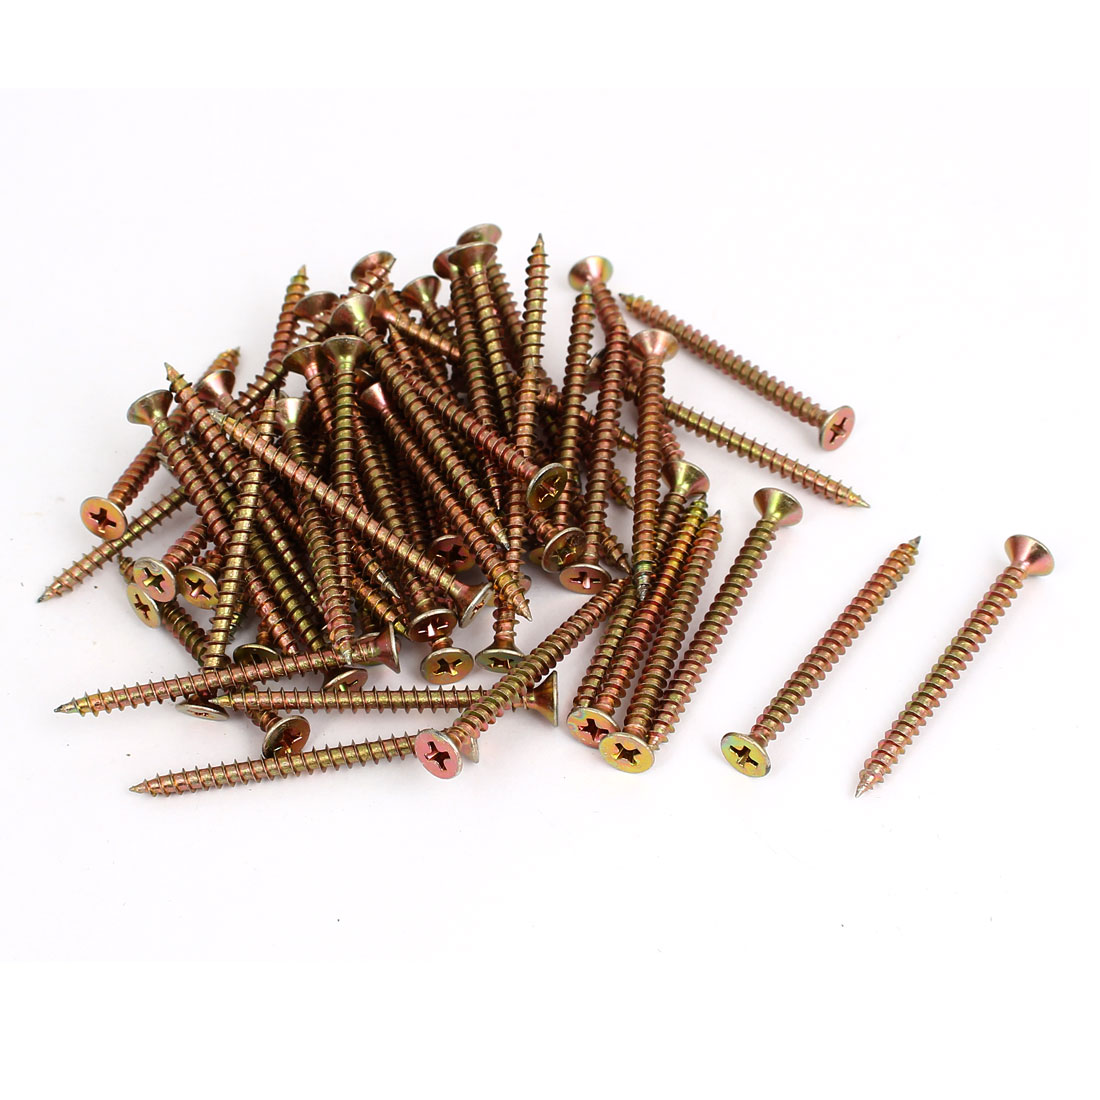 M4 Thread Phillips Flat Head Metal Self Tapping Wood Screw Bronze Tone 60pcs